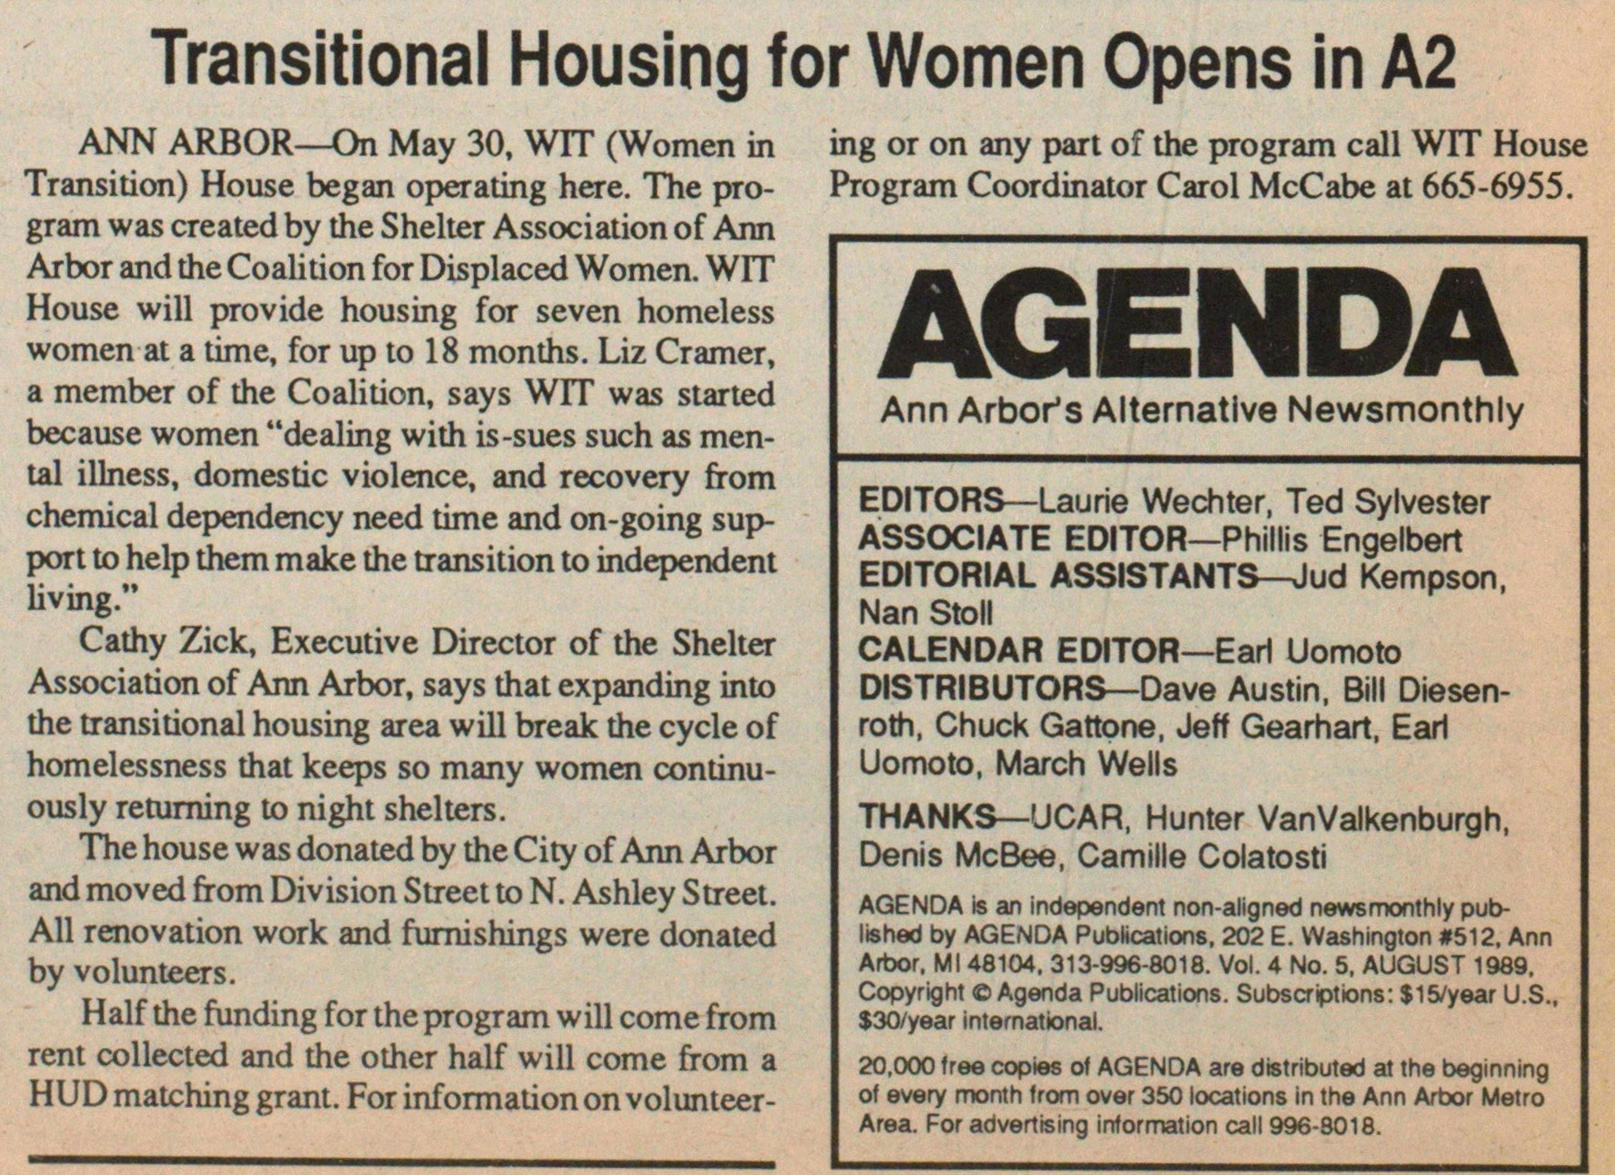 Transitional Housing For Women Opens In A2 image